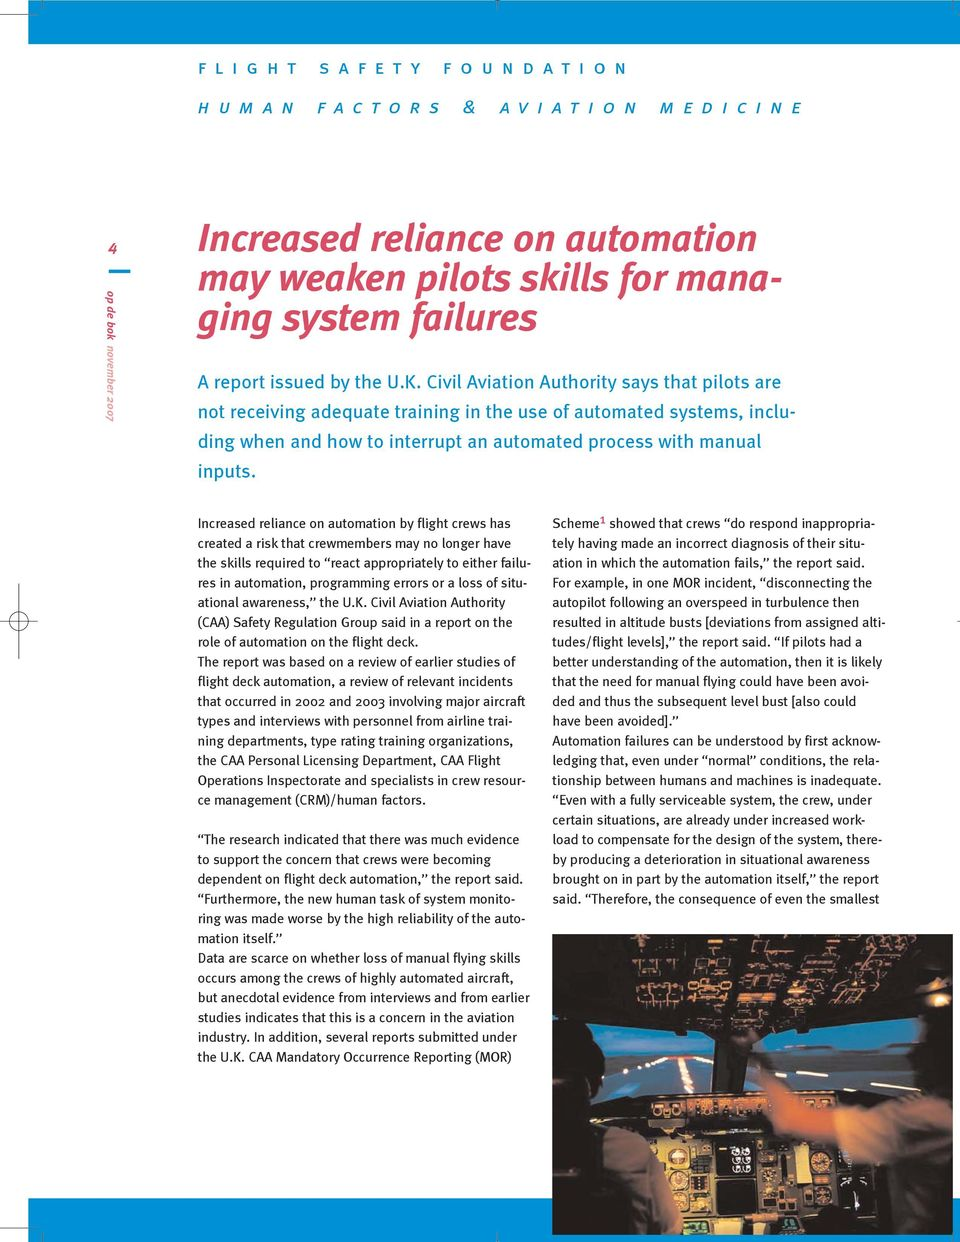 Increased reliance on automation by flight crews has created a risk that crewmembers may no longer have the skills required to react appropriately to either failures in automation, programming errors